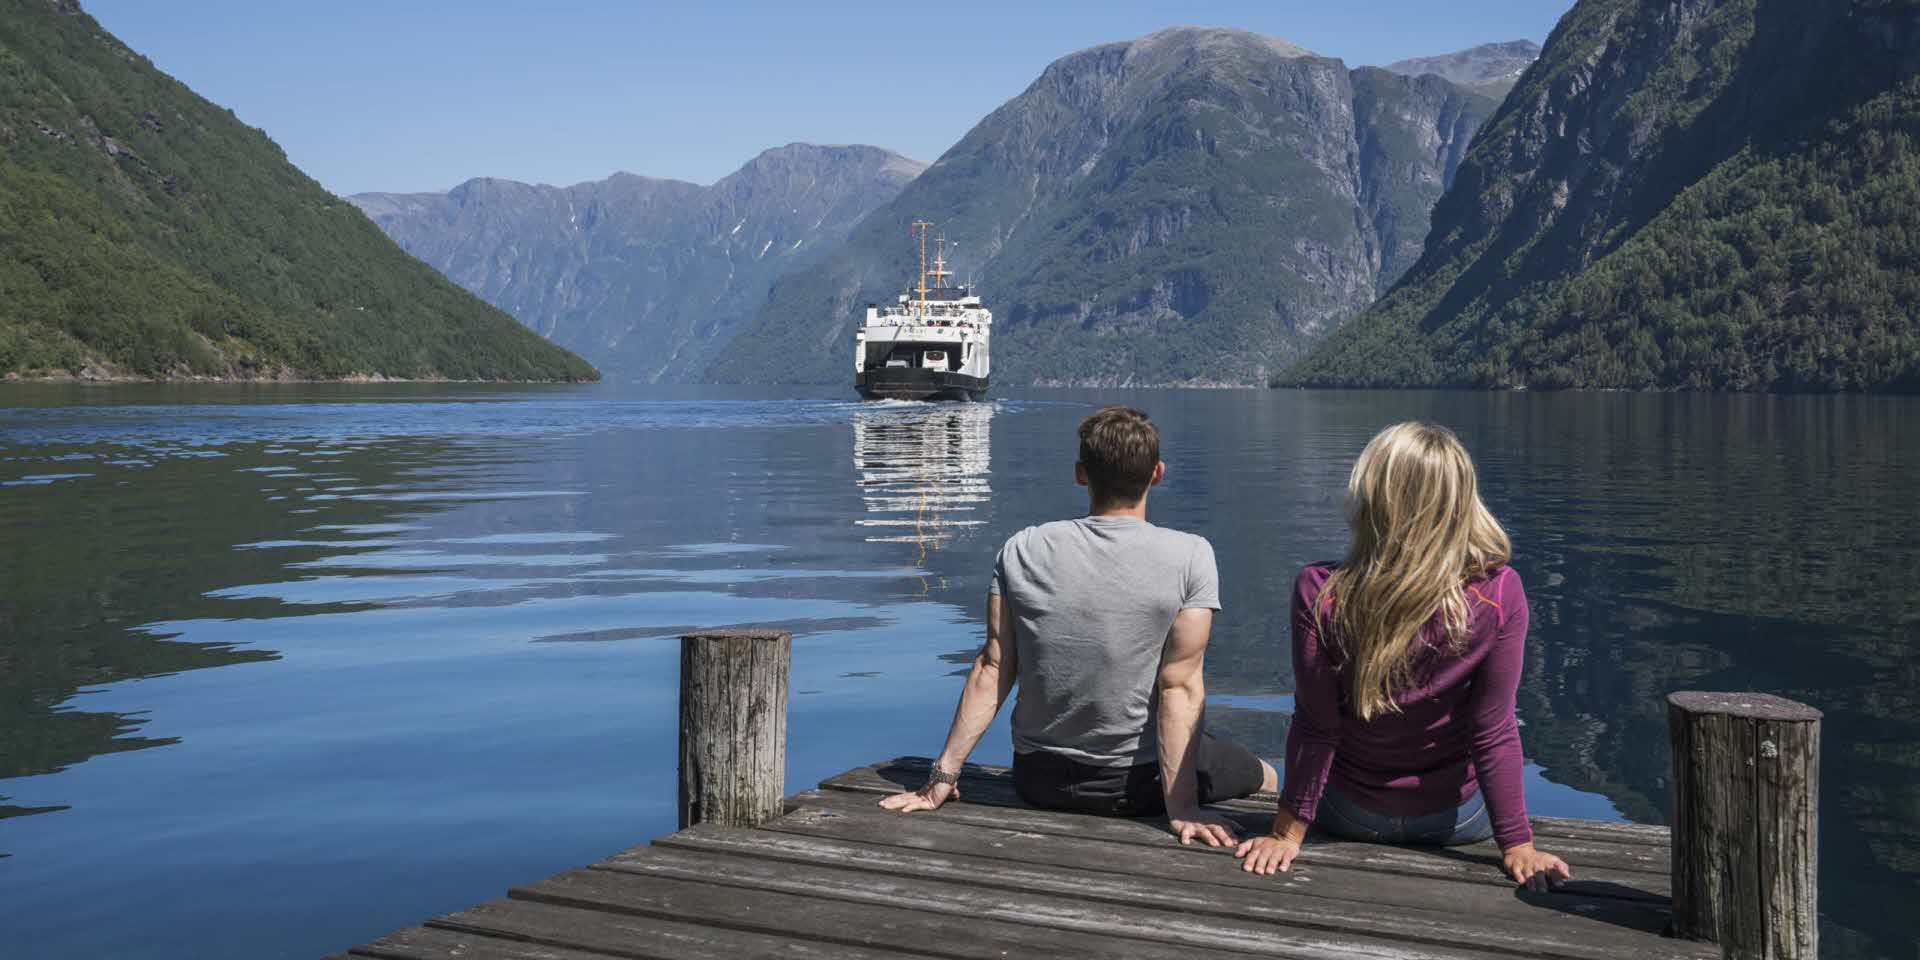 A woman and a man sitting on a wharf by the Geirangerfjord watching a ferry sailing